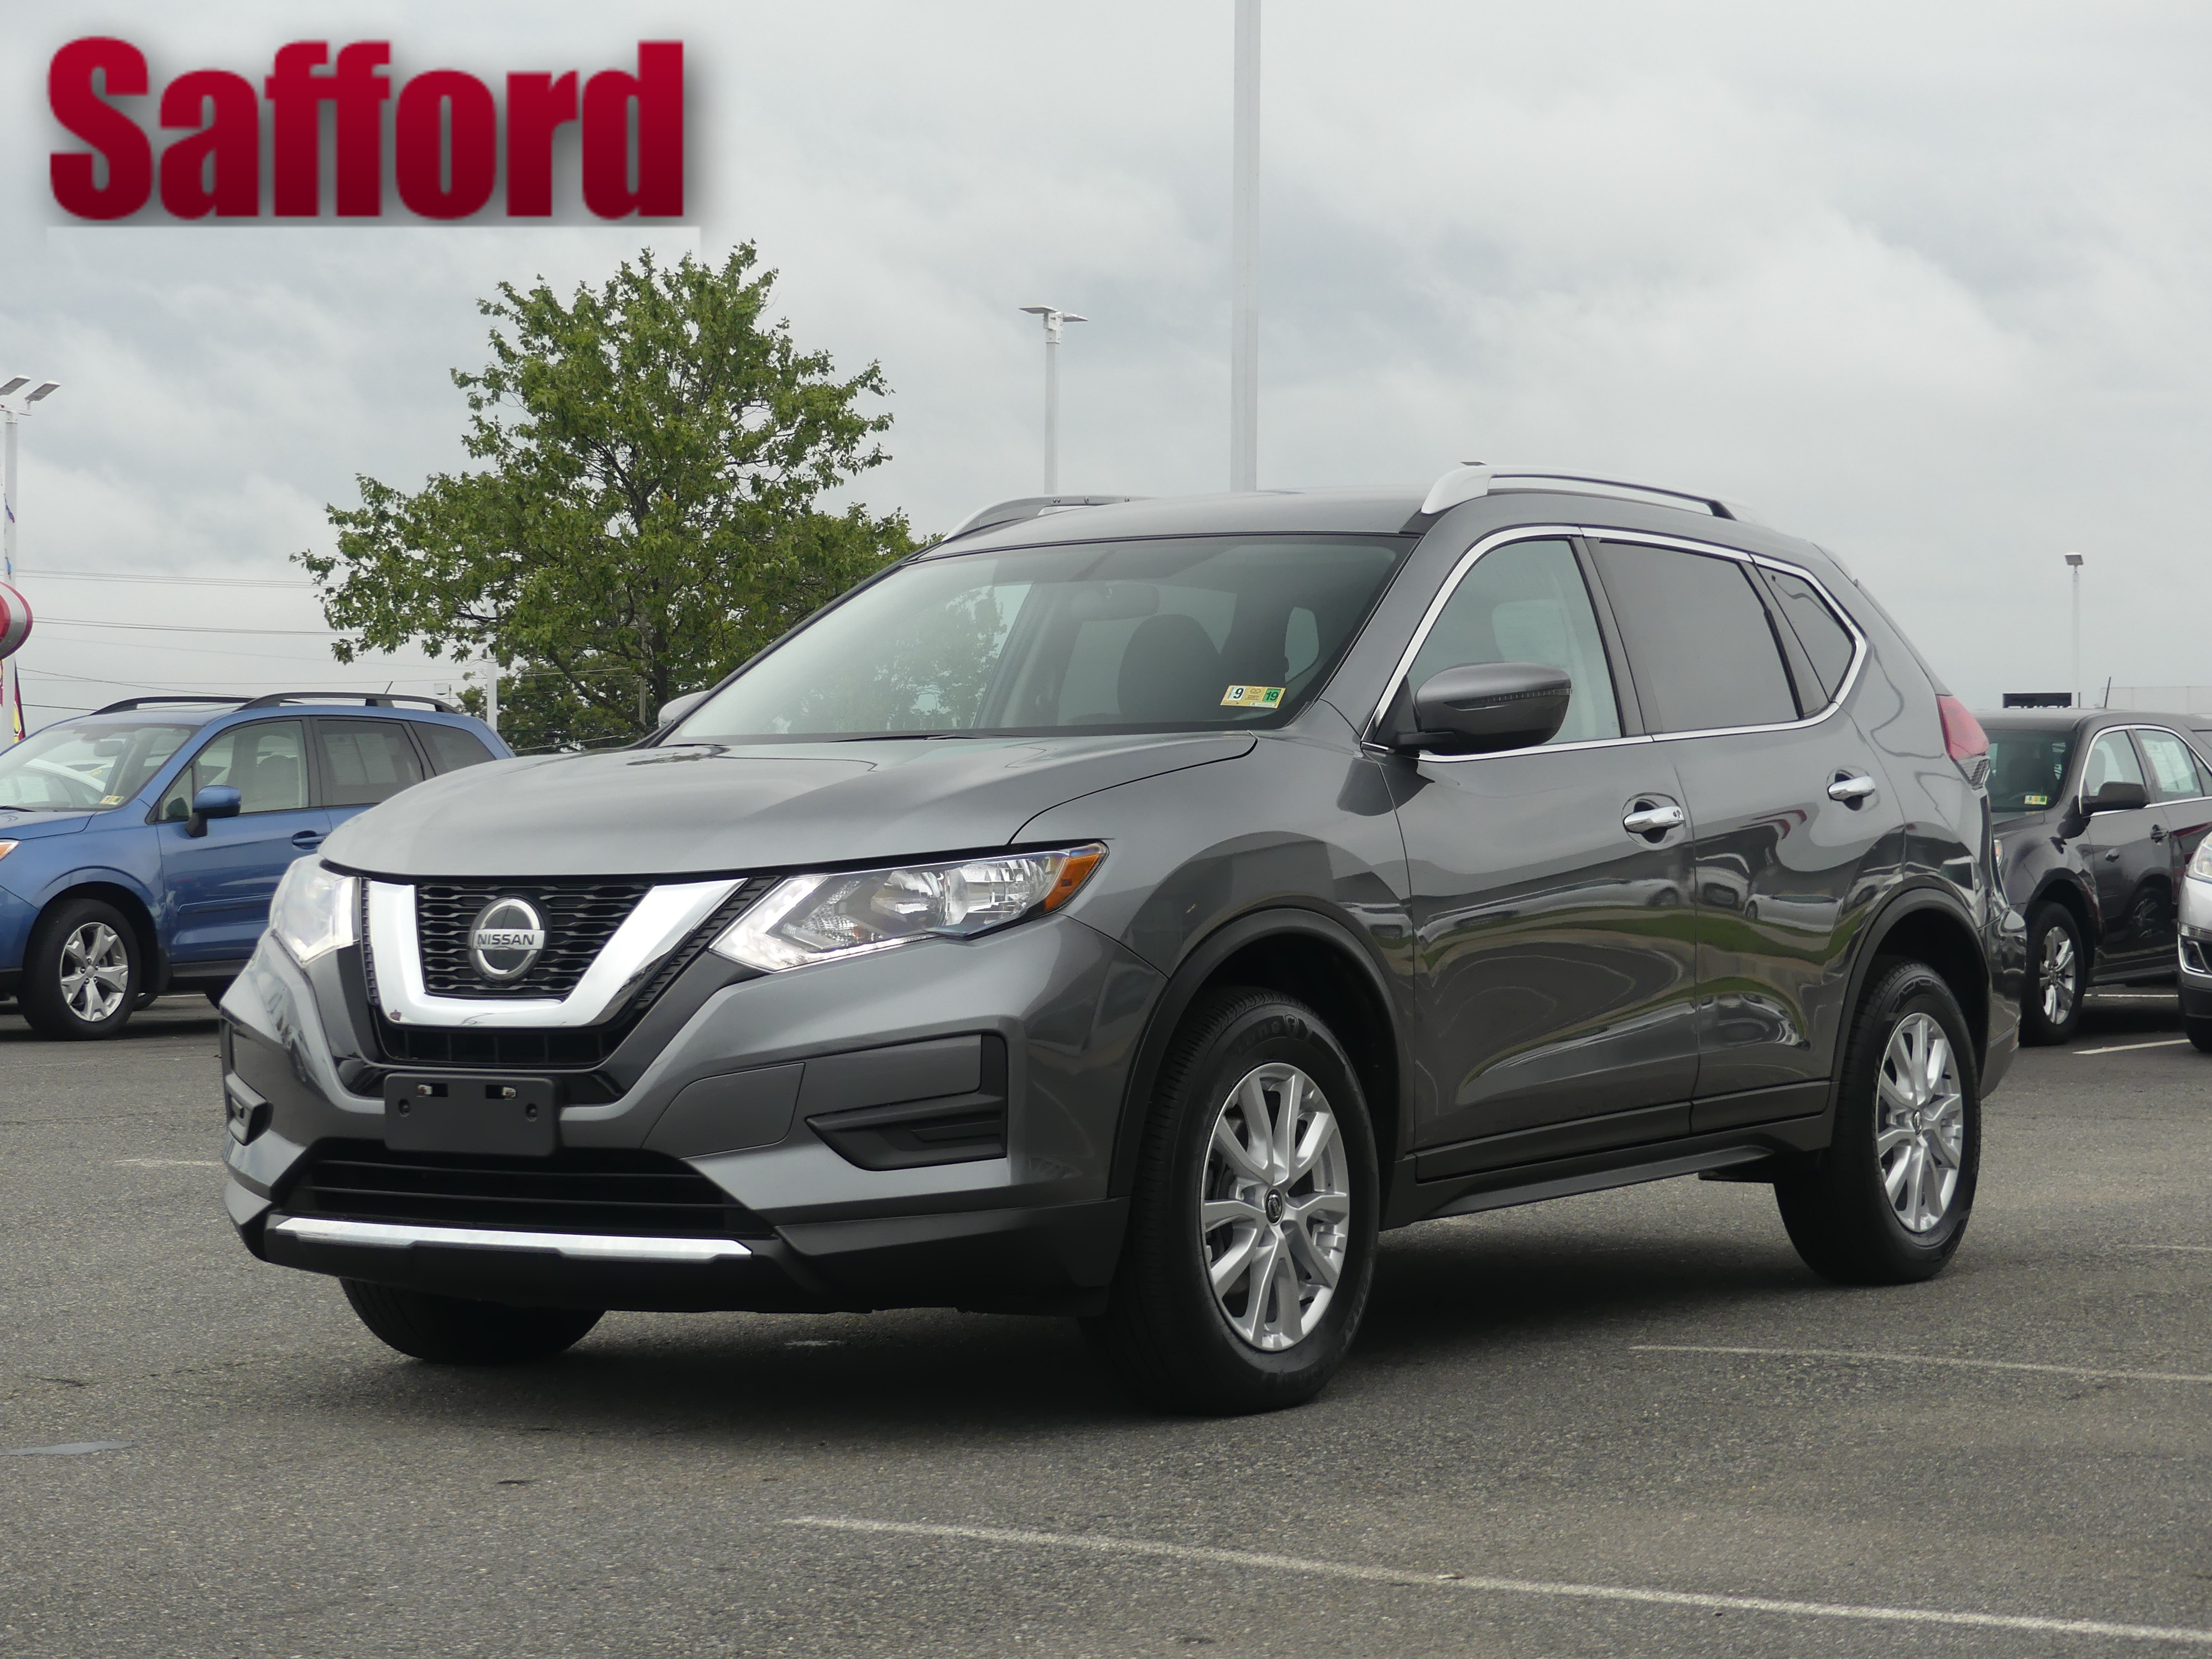 Nissan Rogue Owners Manual: Tilttelescopic steering